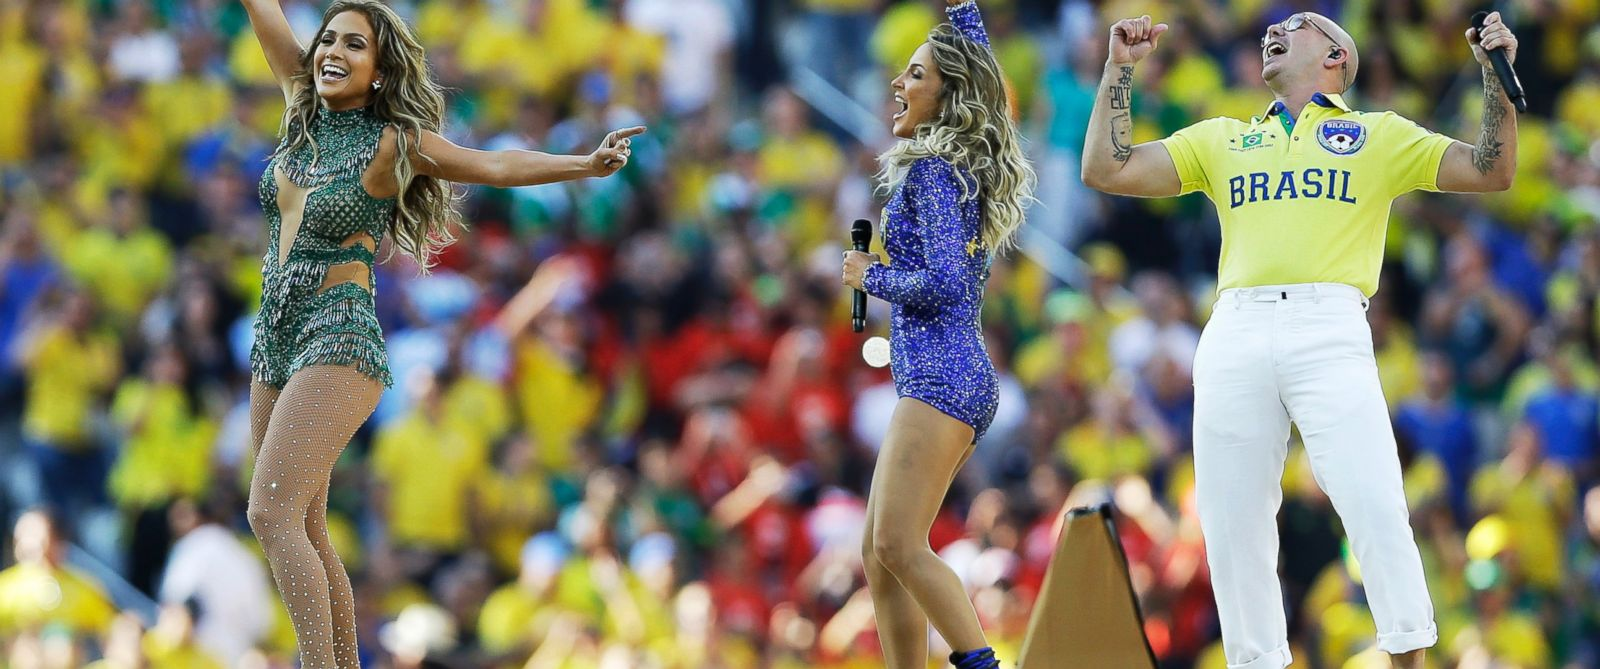 PHOTO:US singer Jennifer Lopez, left, rapper Pitbull and Brazilian singer Claudia Leitte perform during the opening ceremony in the Itaquerao Stadium in Sao Paulo, Brazil, June 12, 2014.